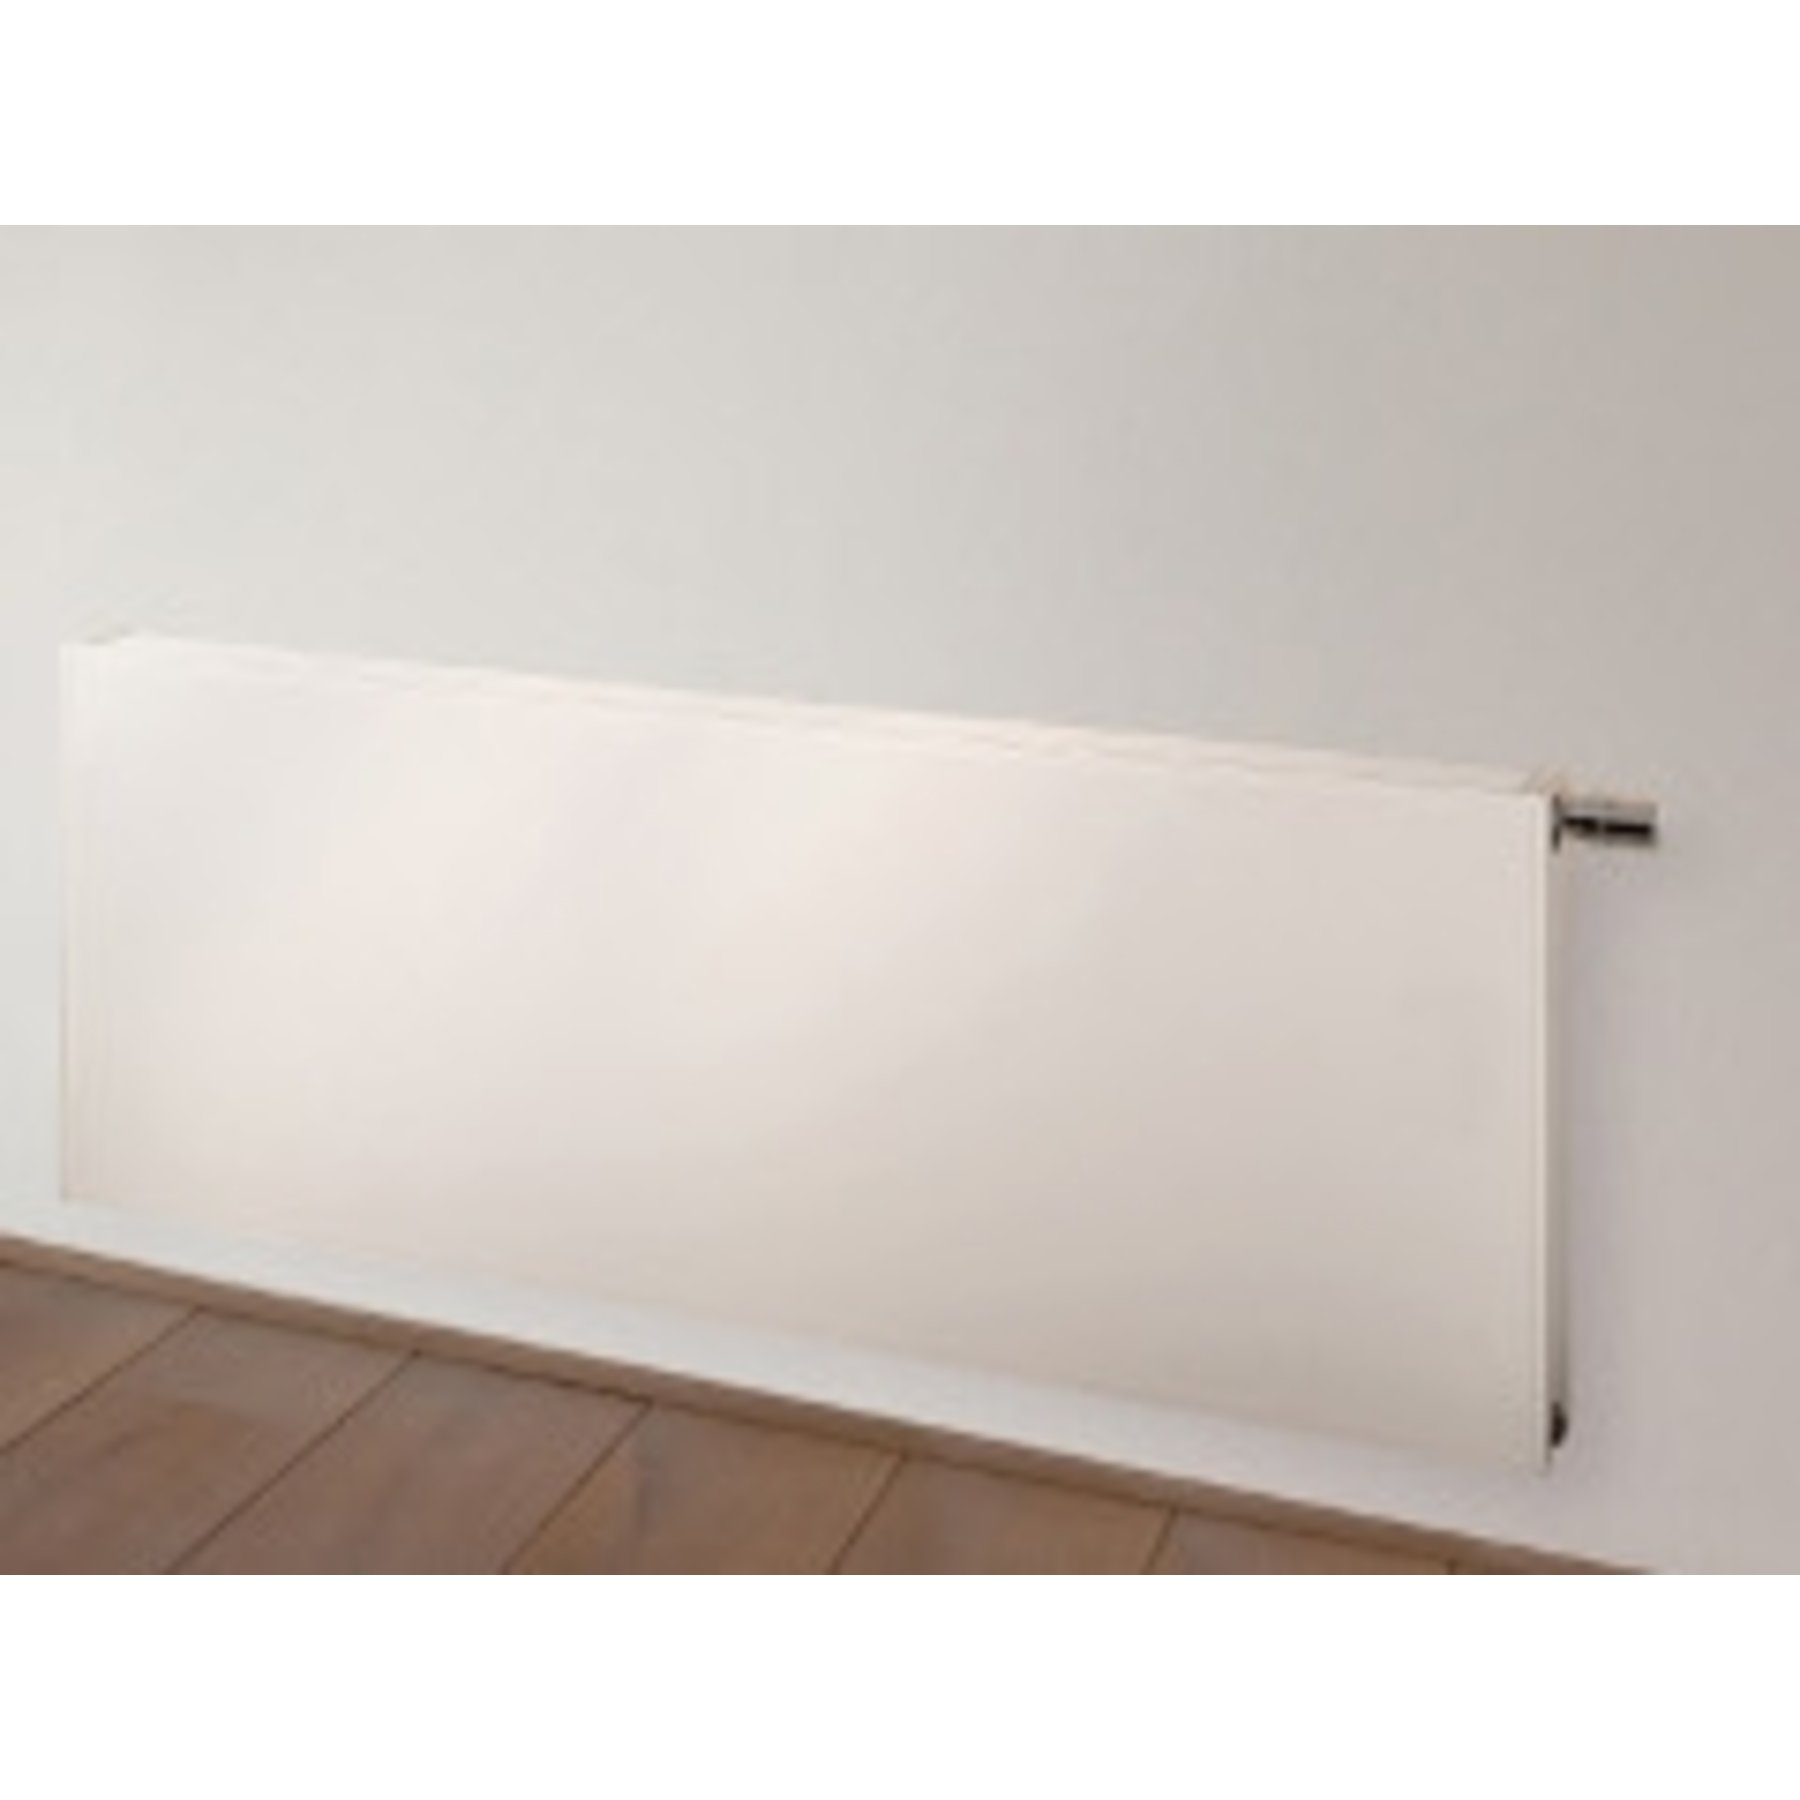 Vasco Flatline Paneelradiator type 21 400x1200mm 1097W vlak wit structuur (S600)